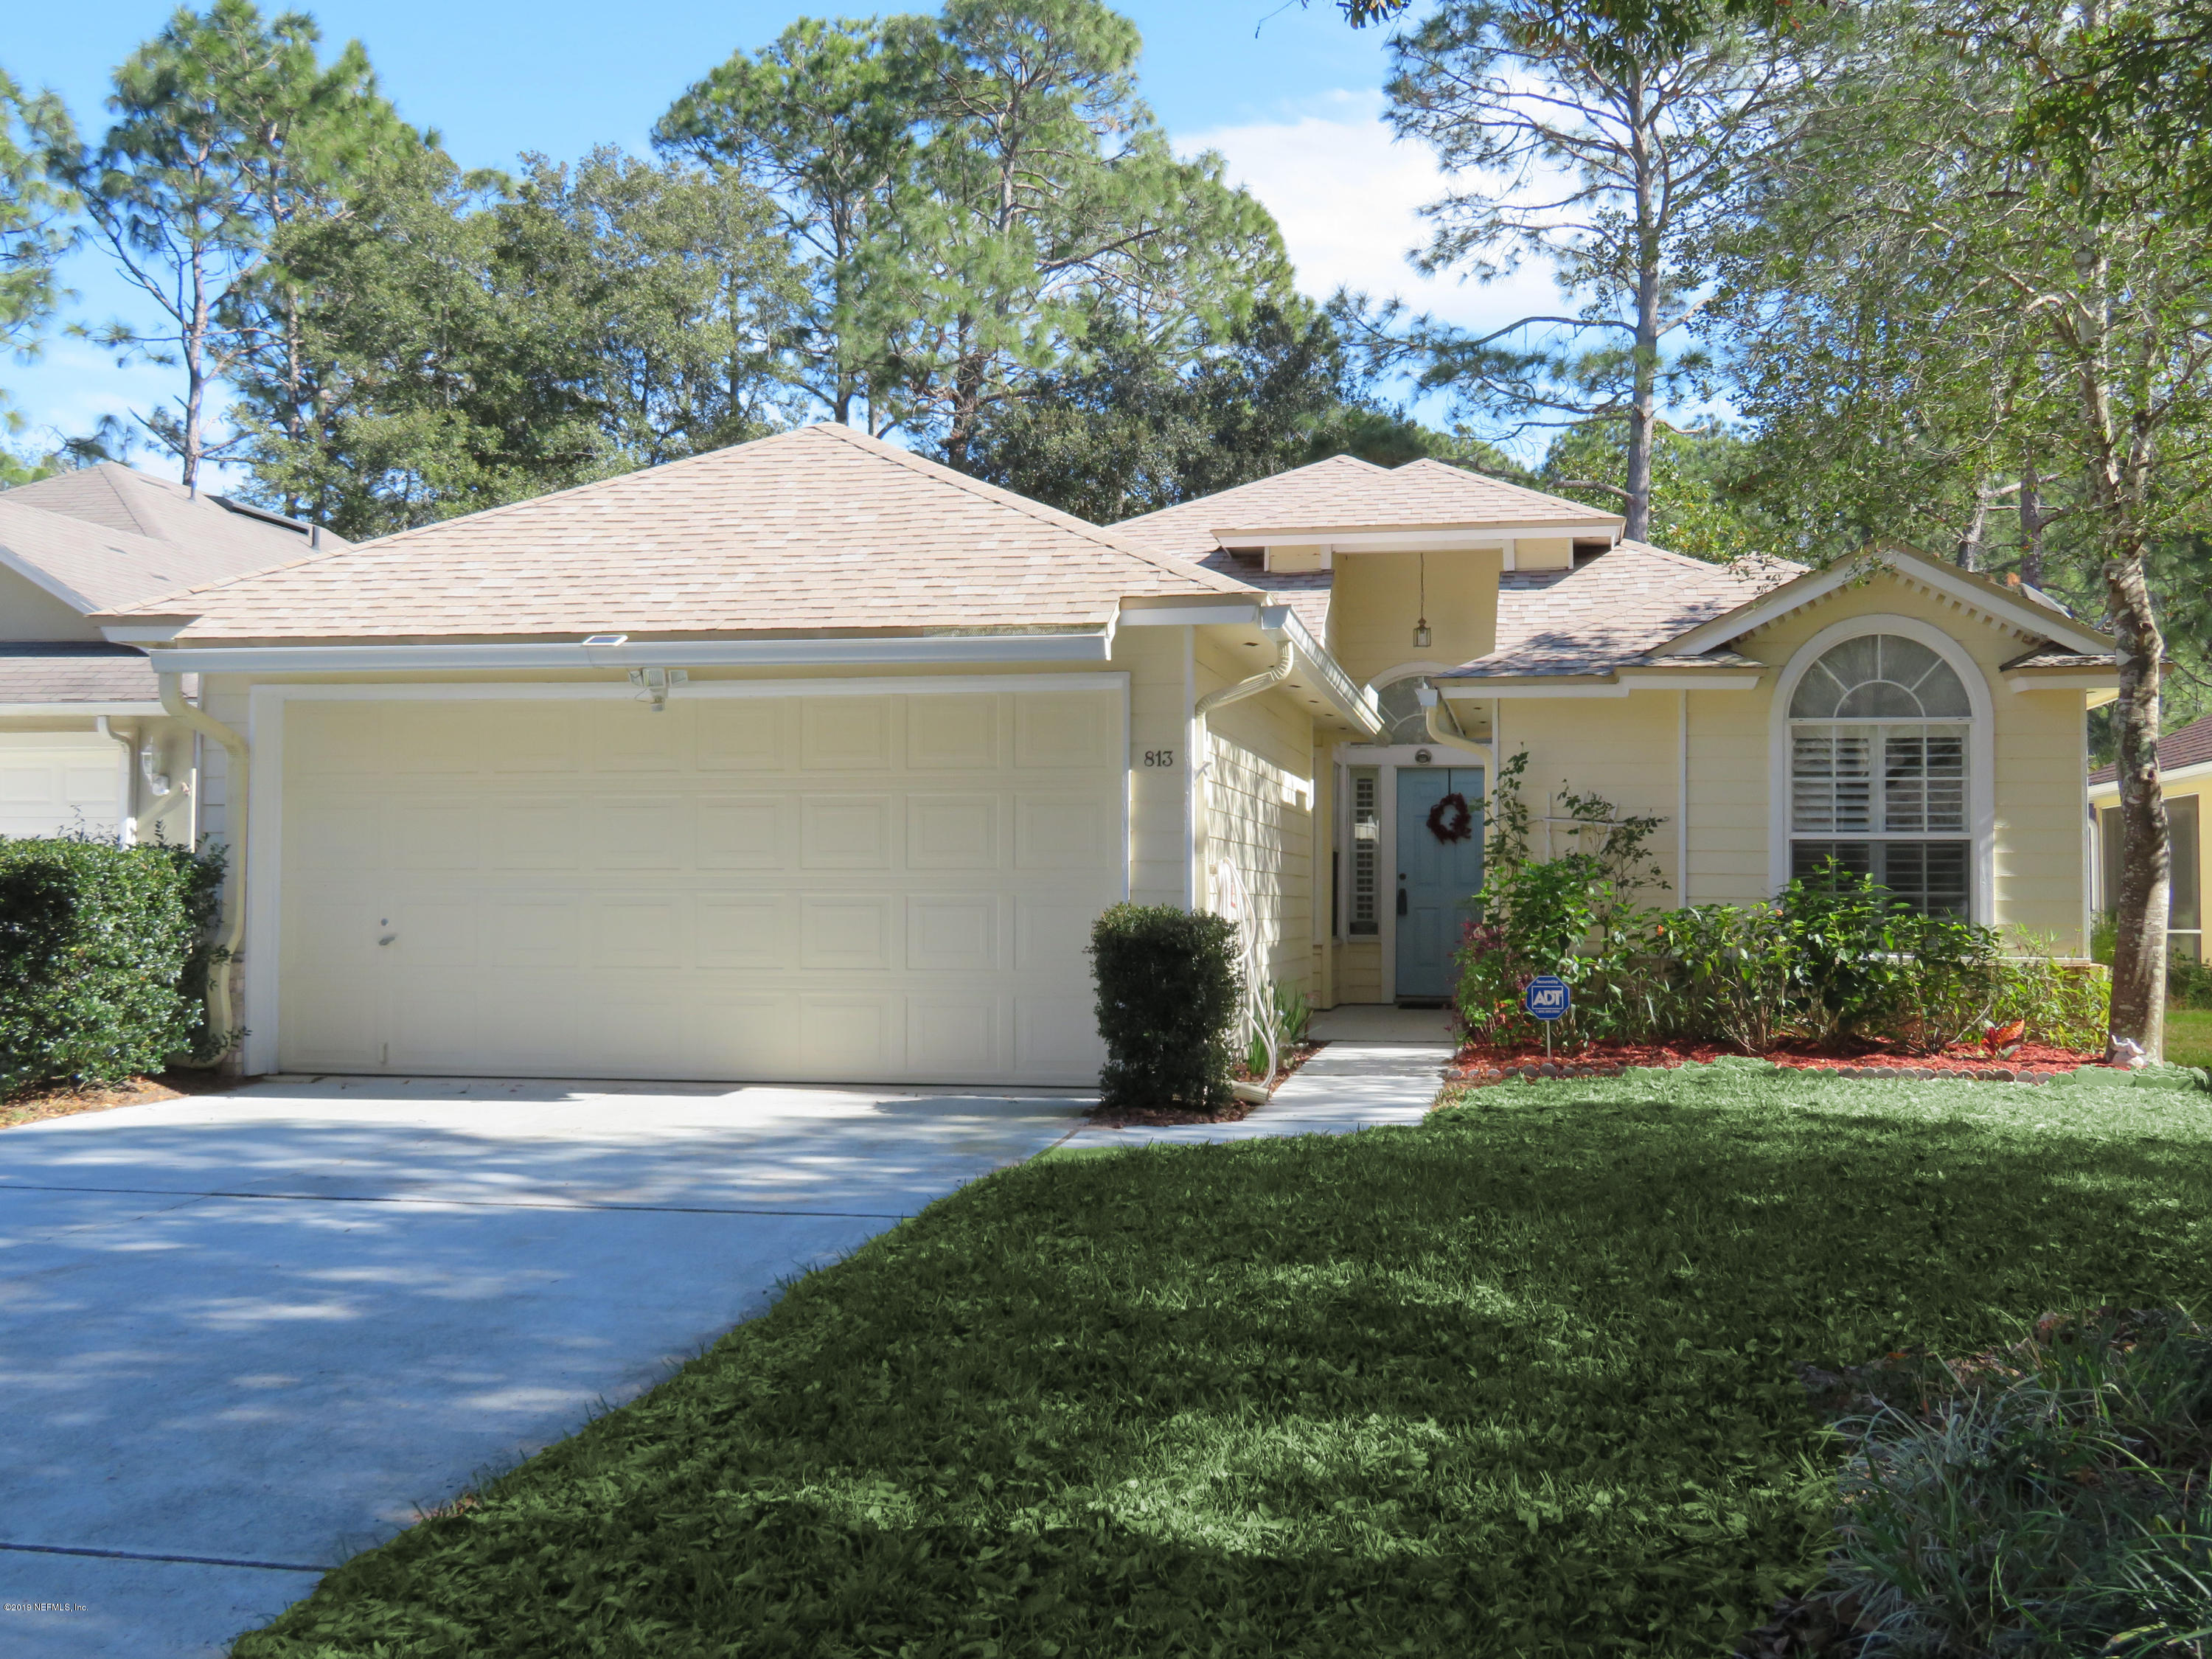 Photo of 813 PUTTERS GREEN, ST JOHNS, FL 32259